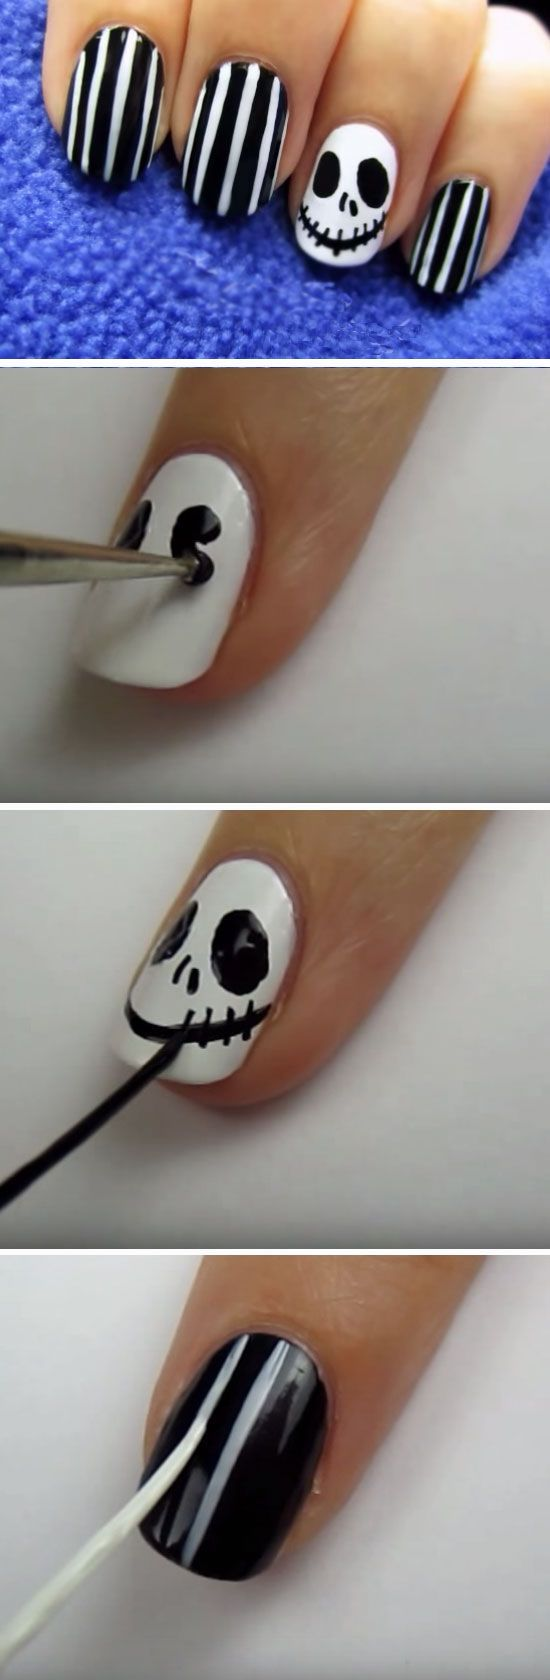 Click Pic for 23 Spooky Nail Art Ideas for Halloween